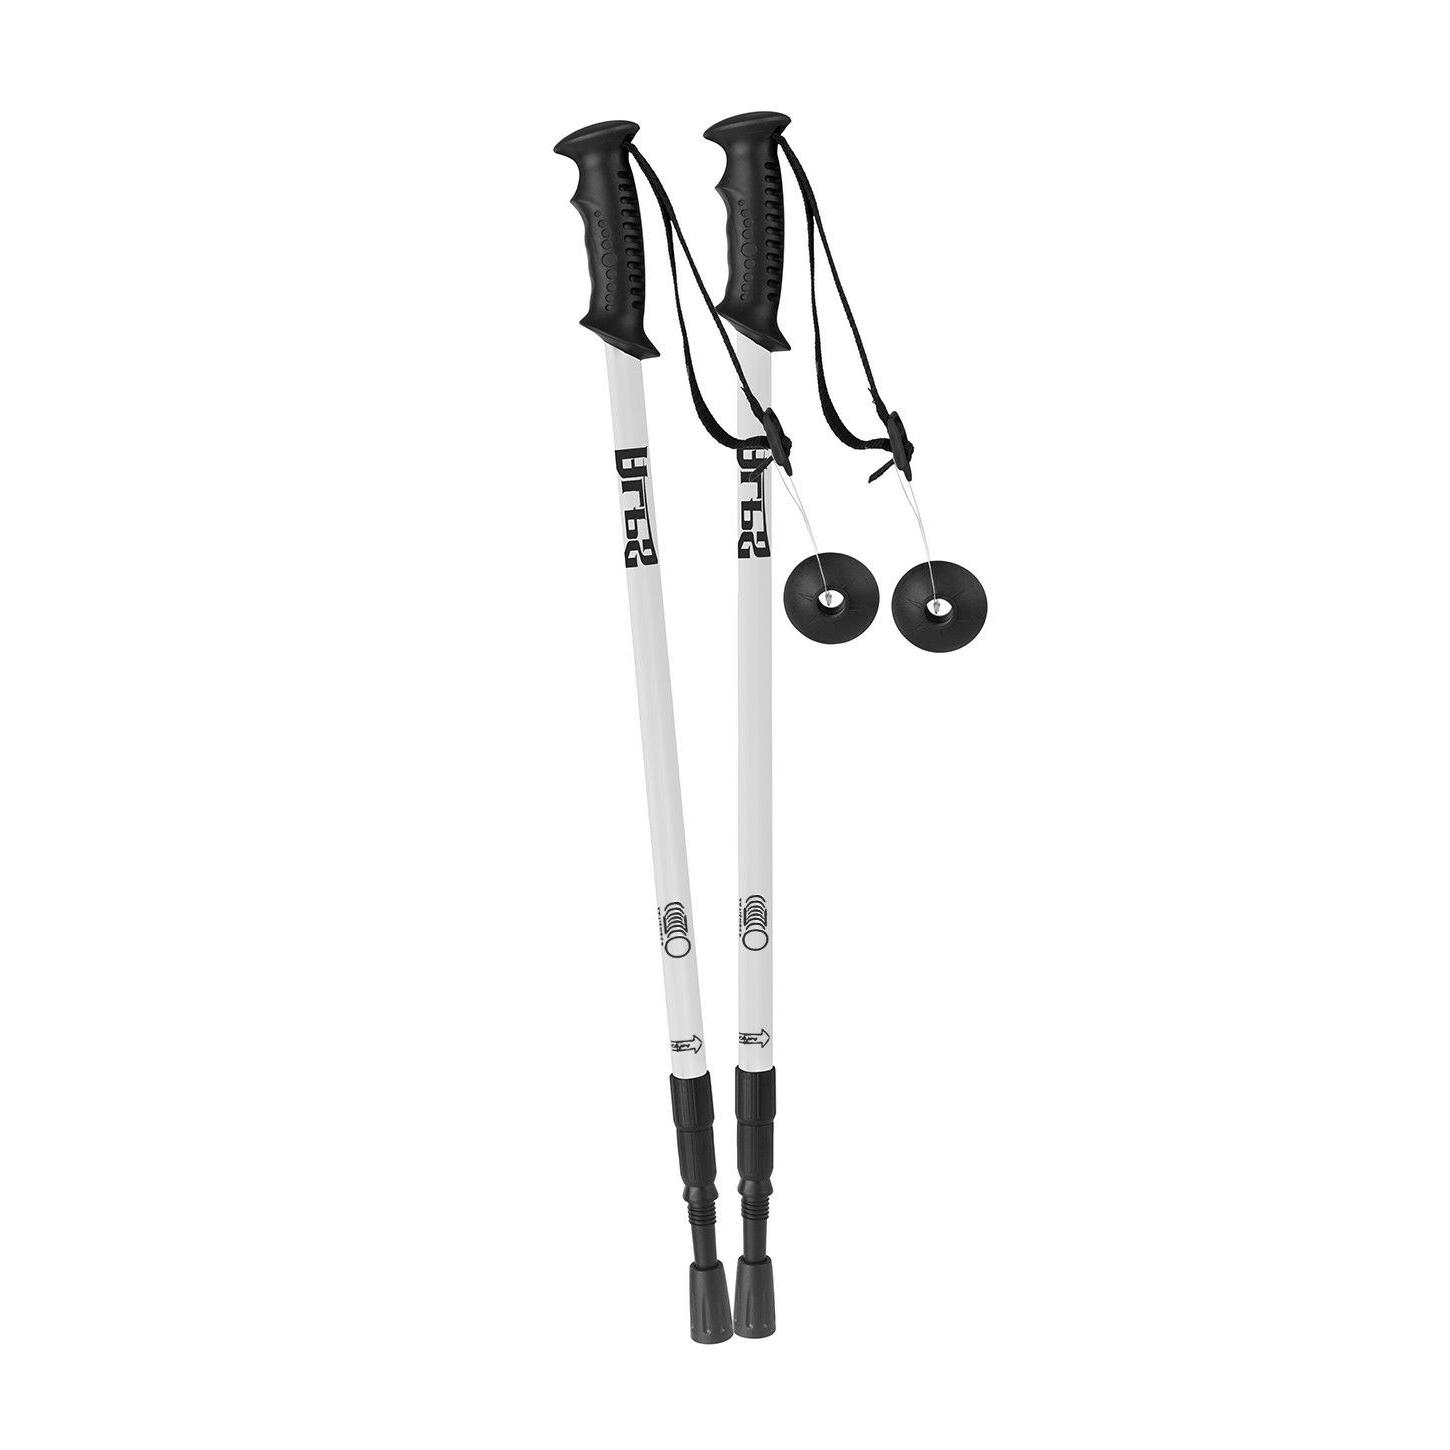 ALPS Poles 3-Section Adjustable Antishock